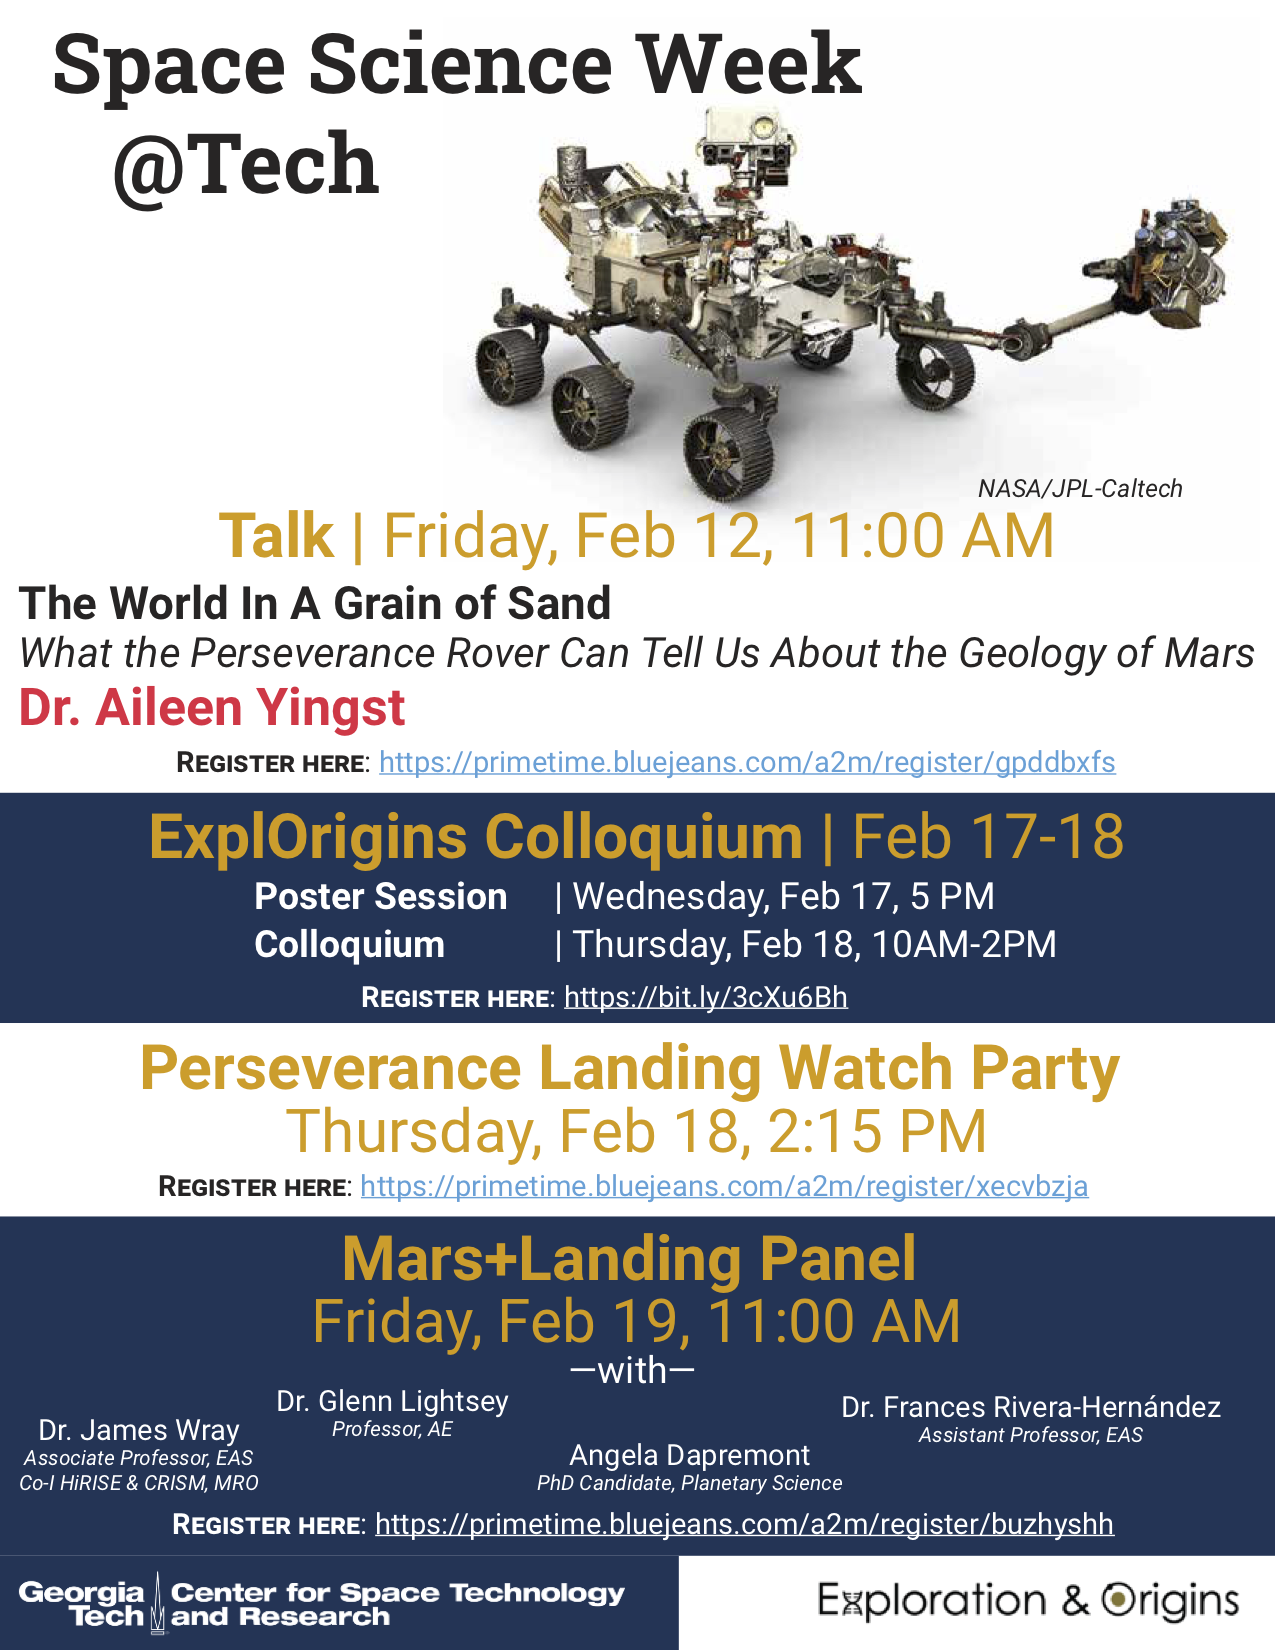 Space Science Week at Tech